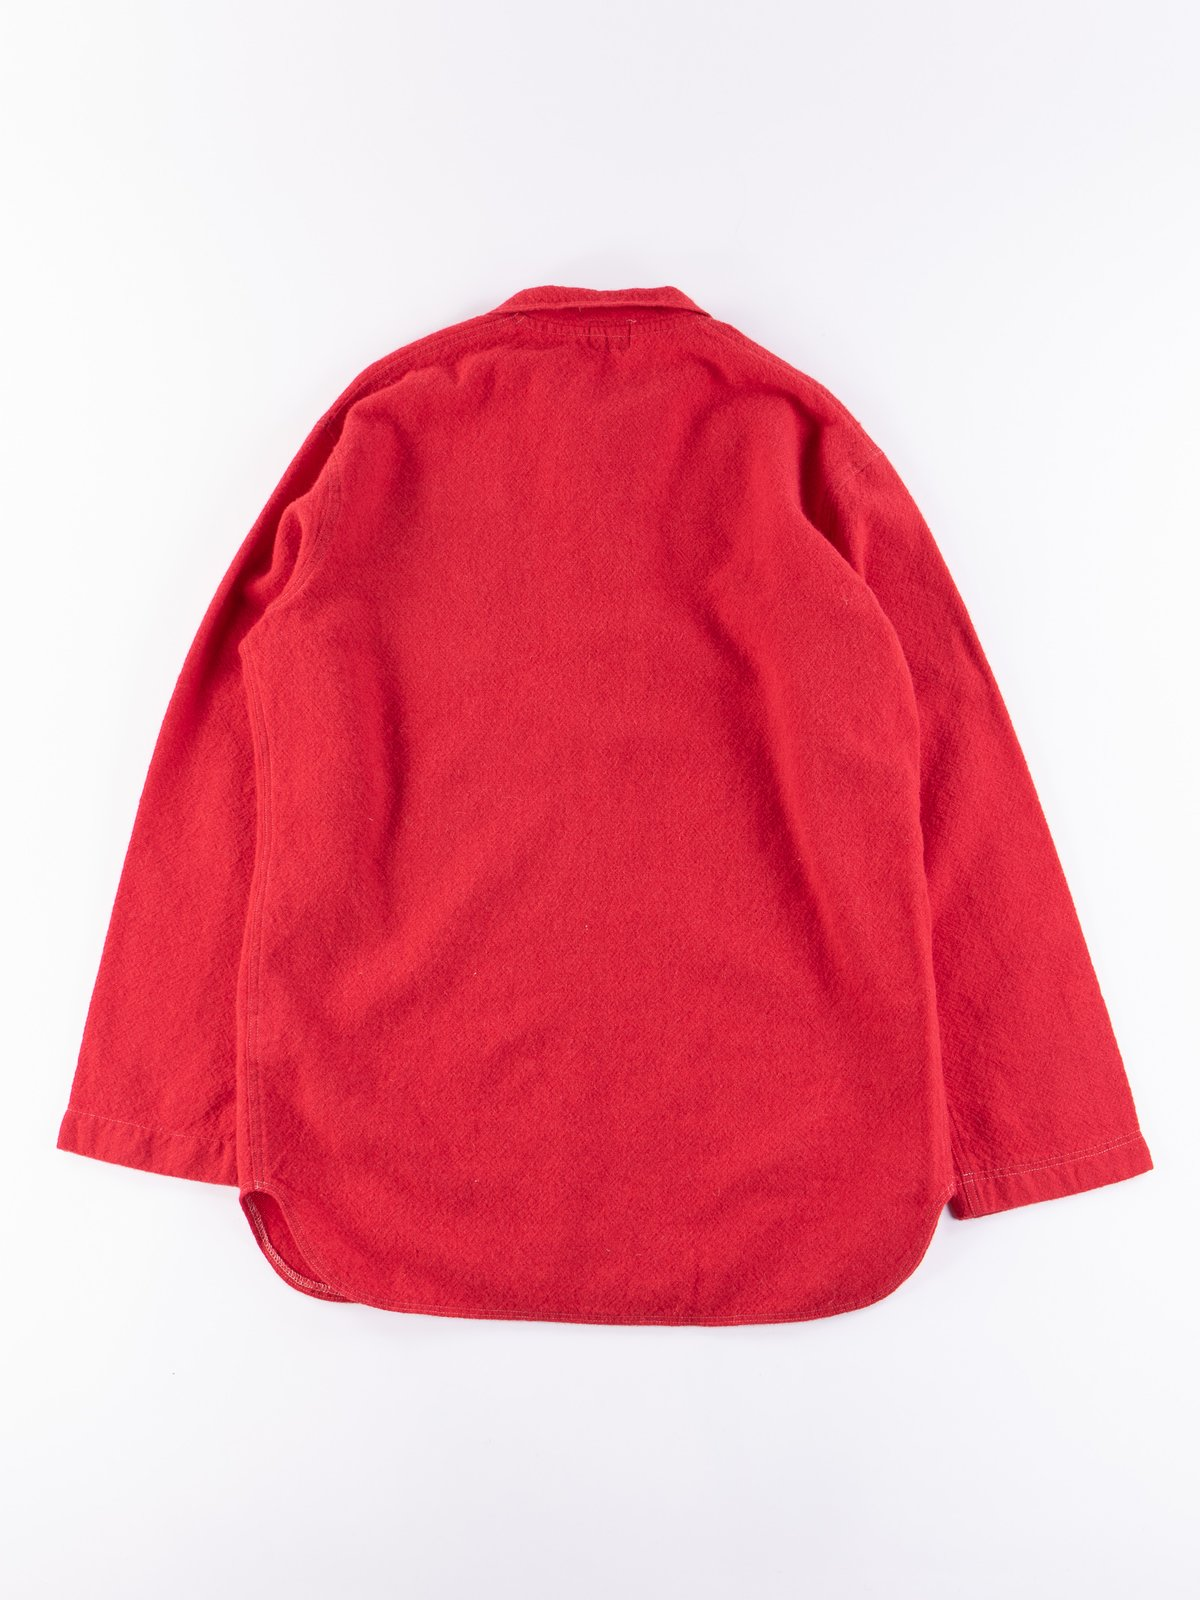 Scarlet Weavers Stock Pullover Tail Shirt - Image 5